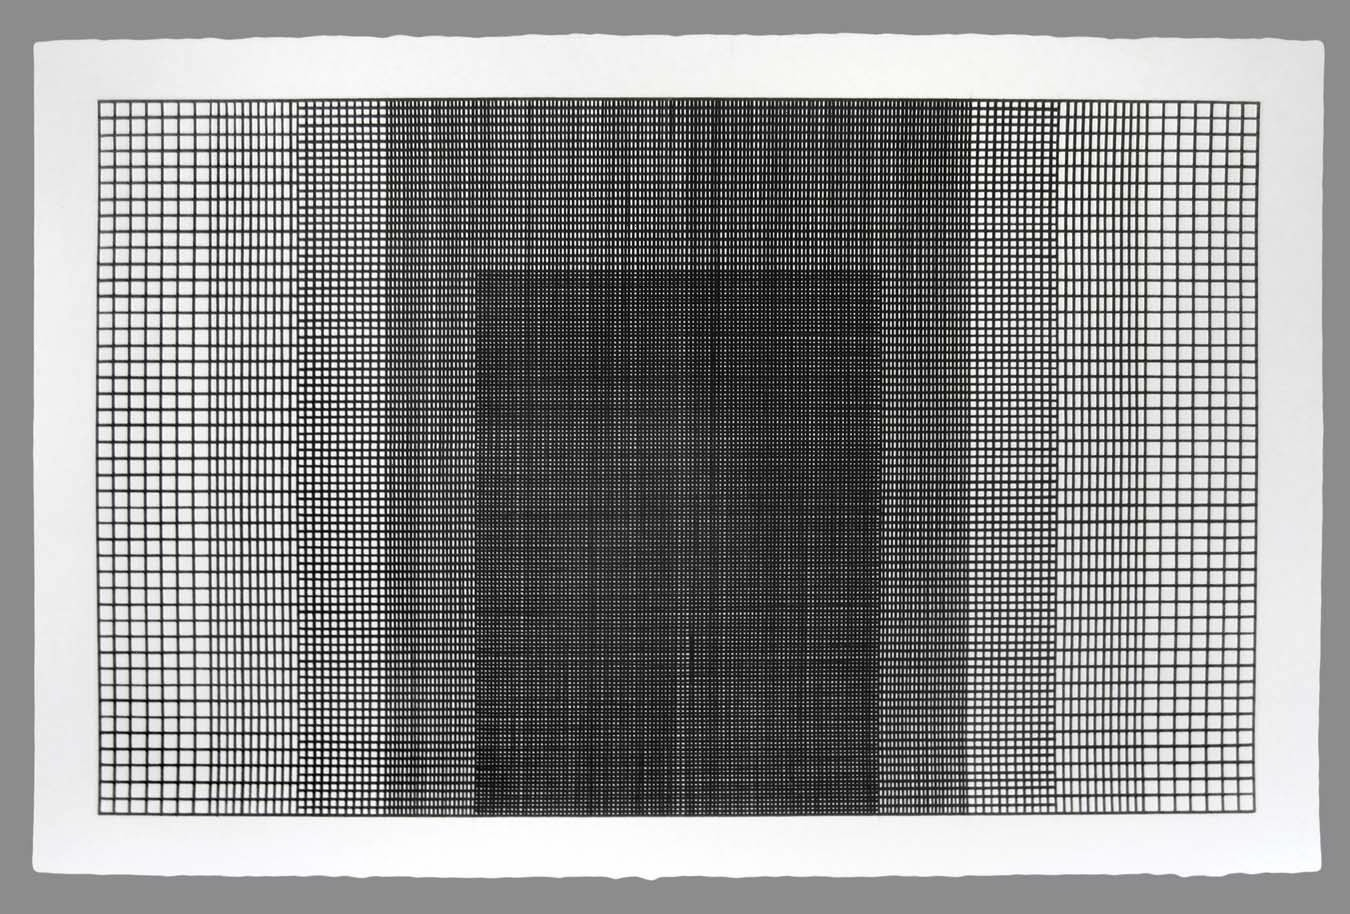 Untitled Grid - Acrylic Paint on Arches Watercolor Paper - 40 x 26 inches